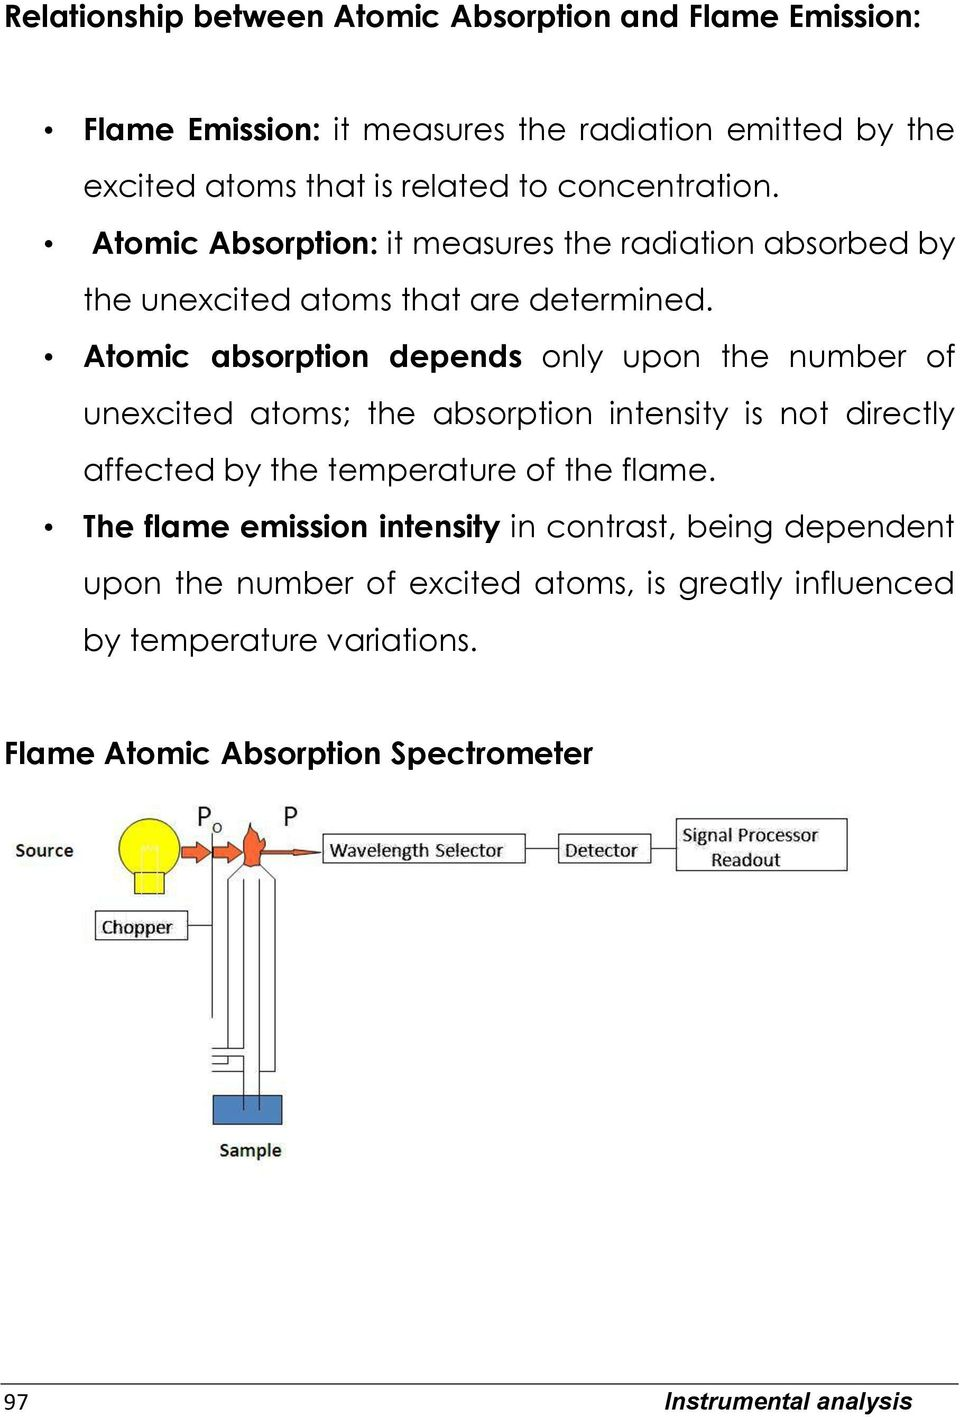 Atomic absorption depends only upon the number of unexcited atoms; the absorption intensity is not directly affected by the temperature of the flame.